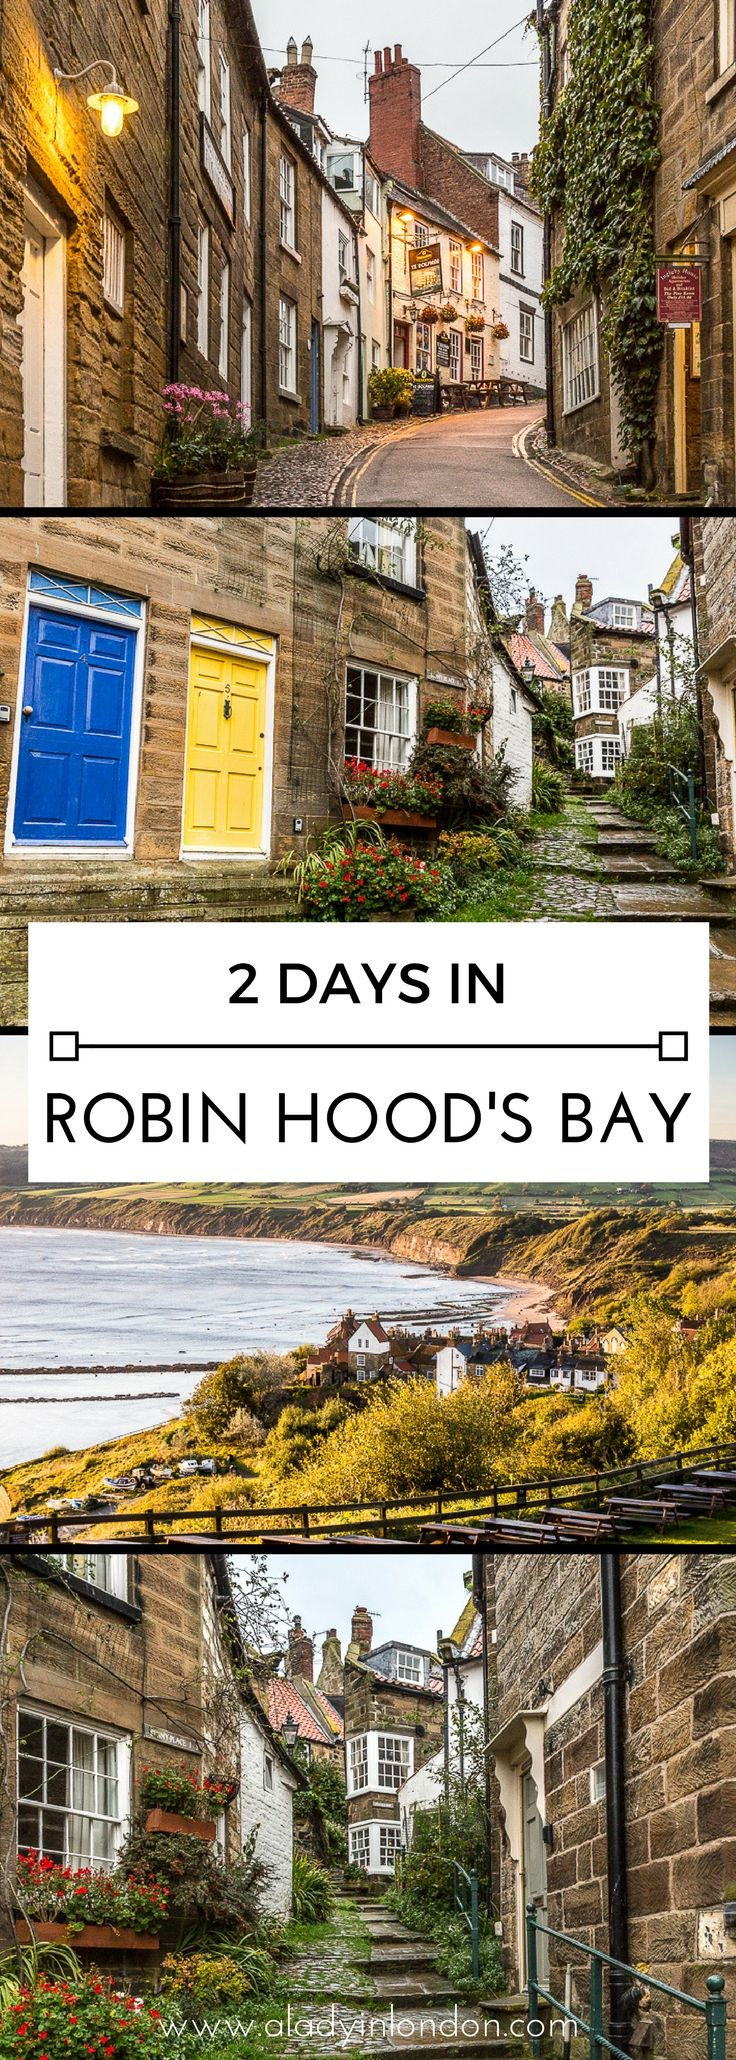 How to spend 2 incredible days in Robin Hood's Bay, Yorkshire, England  #robinhoodsbay #yorkshire #england #uk